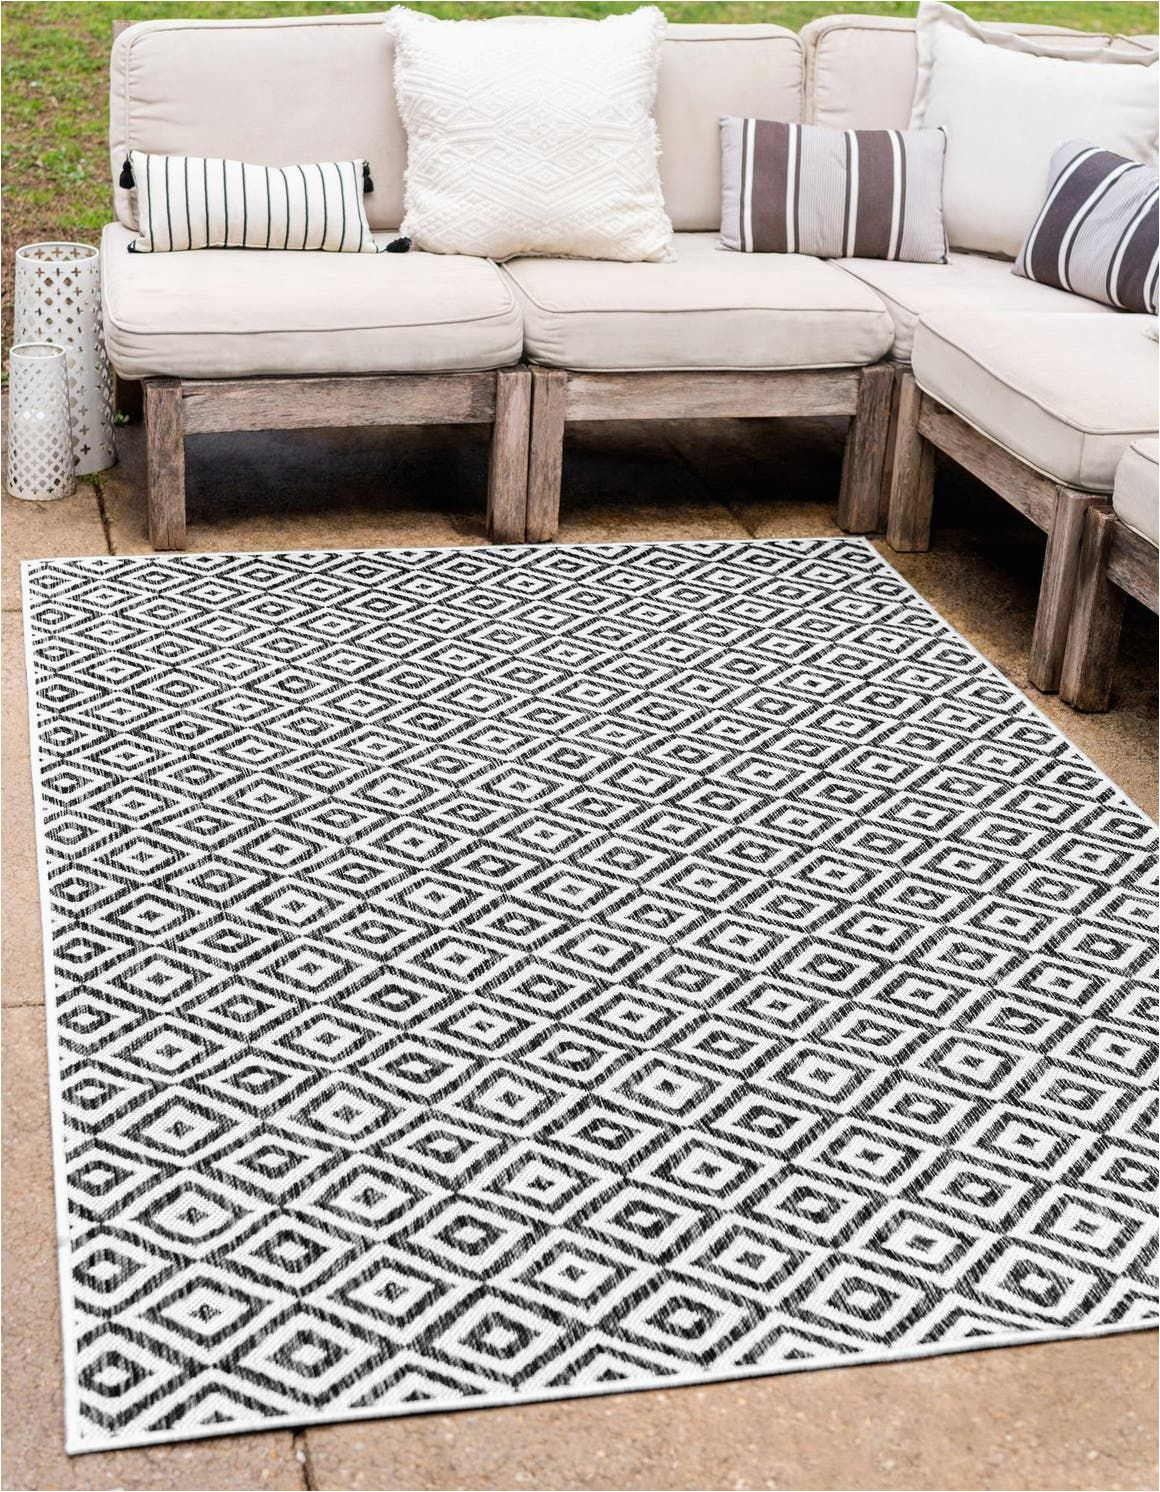 10 X 10 Outdoor area Rug Black Jill Zarin 7 10 X 10 Jill Zarin Outdoor Rug